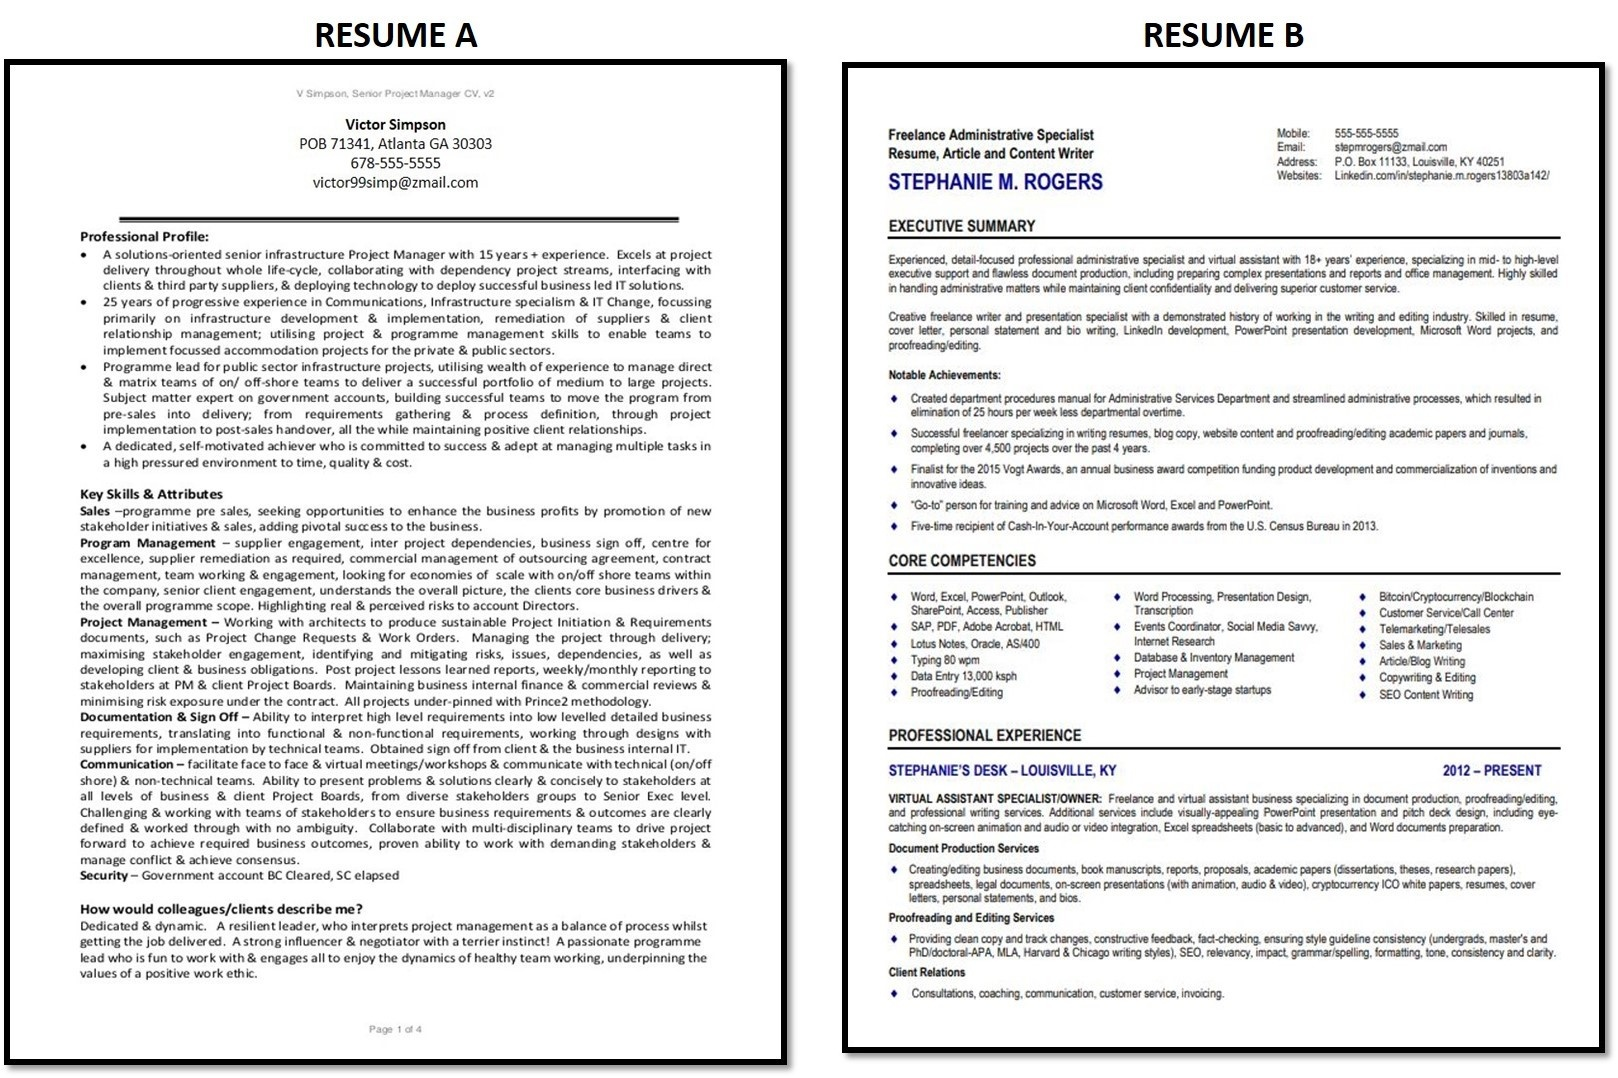 what do recruiters look for in a résumé at first glance quora